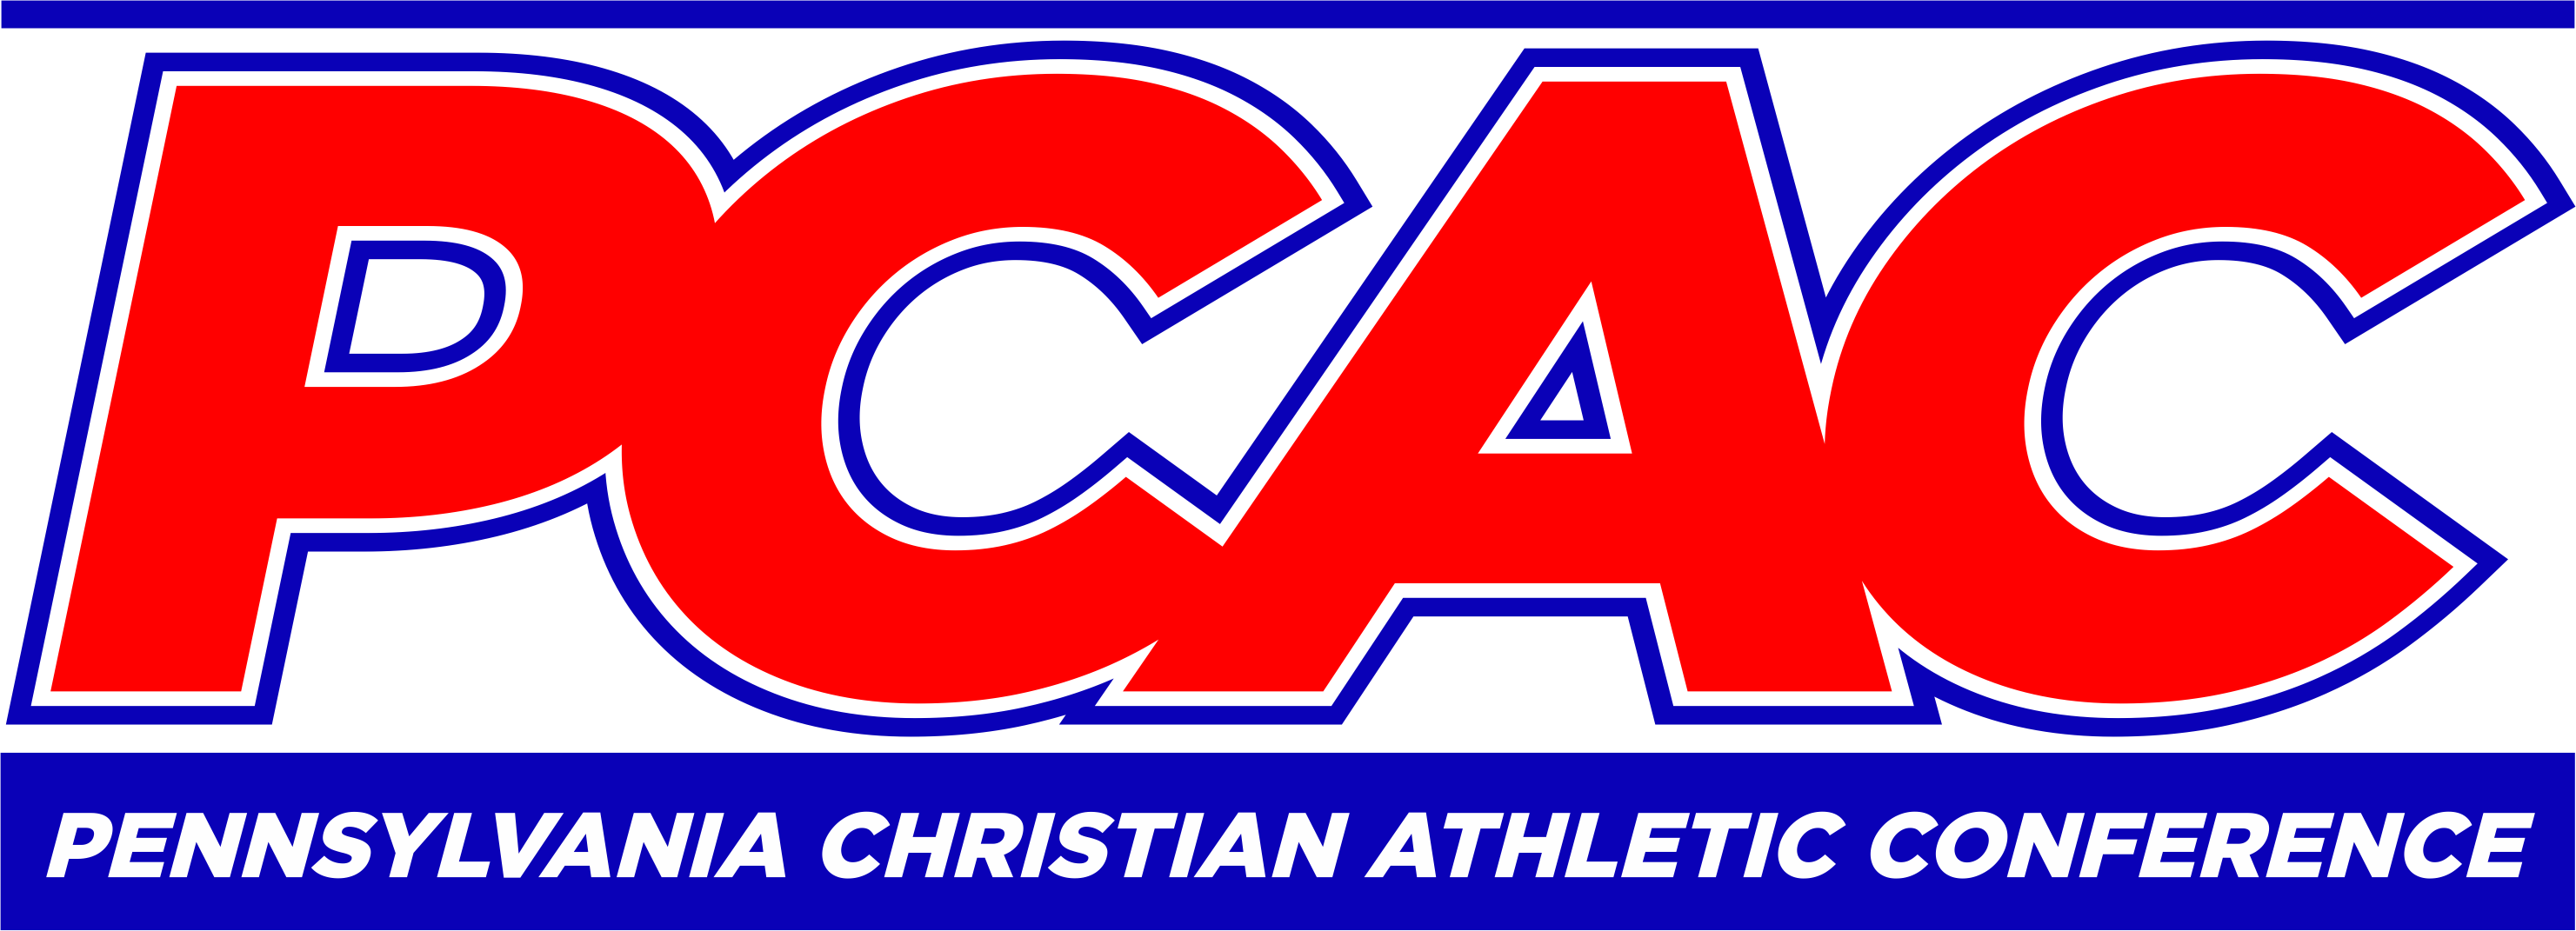 Pennsylvania Christian Athletic Conference